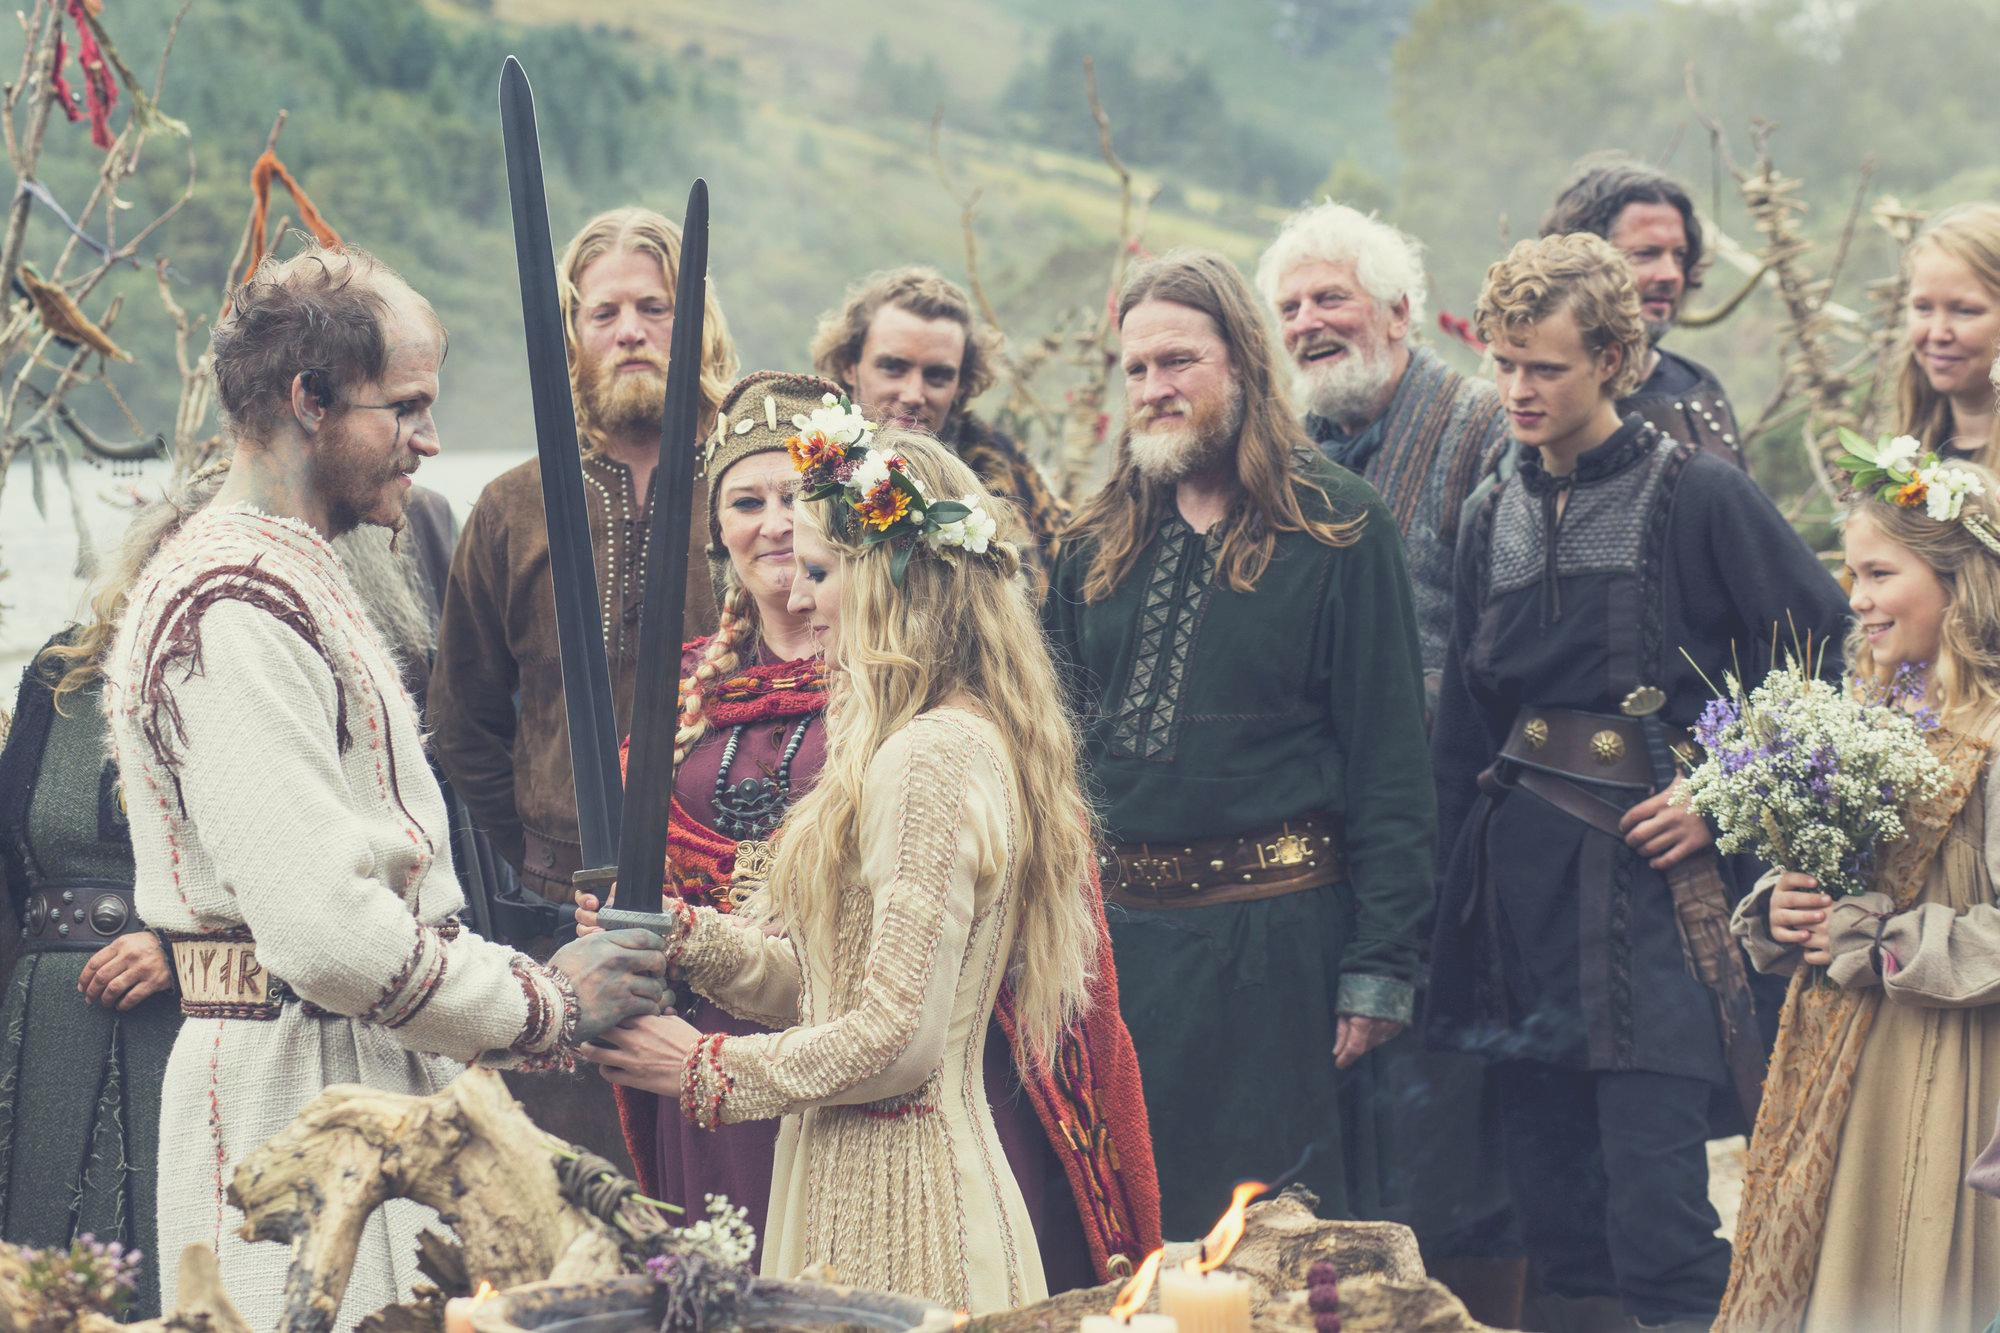 9 Awesome Facts About The Viking Wedding Rituals - BaviPower Blog